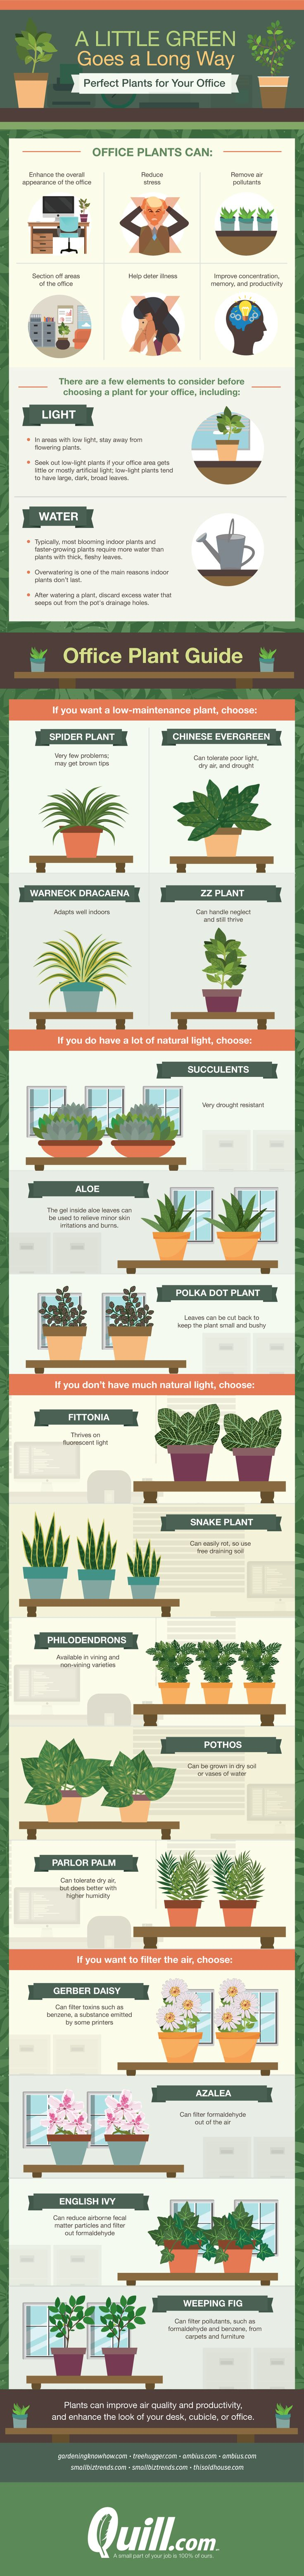 A Little Green Goes a Long Way: Plants Perfect for Your Office